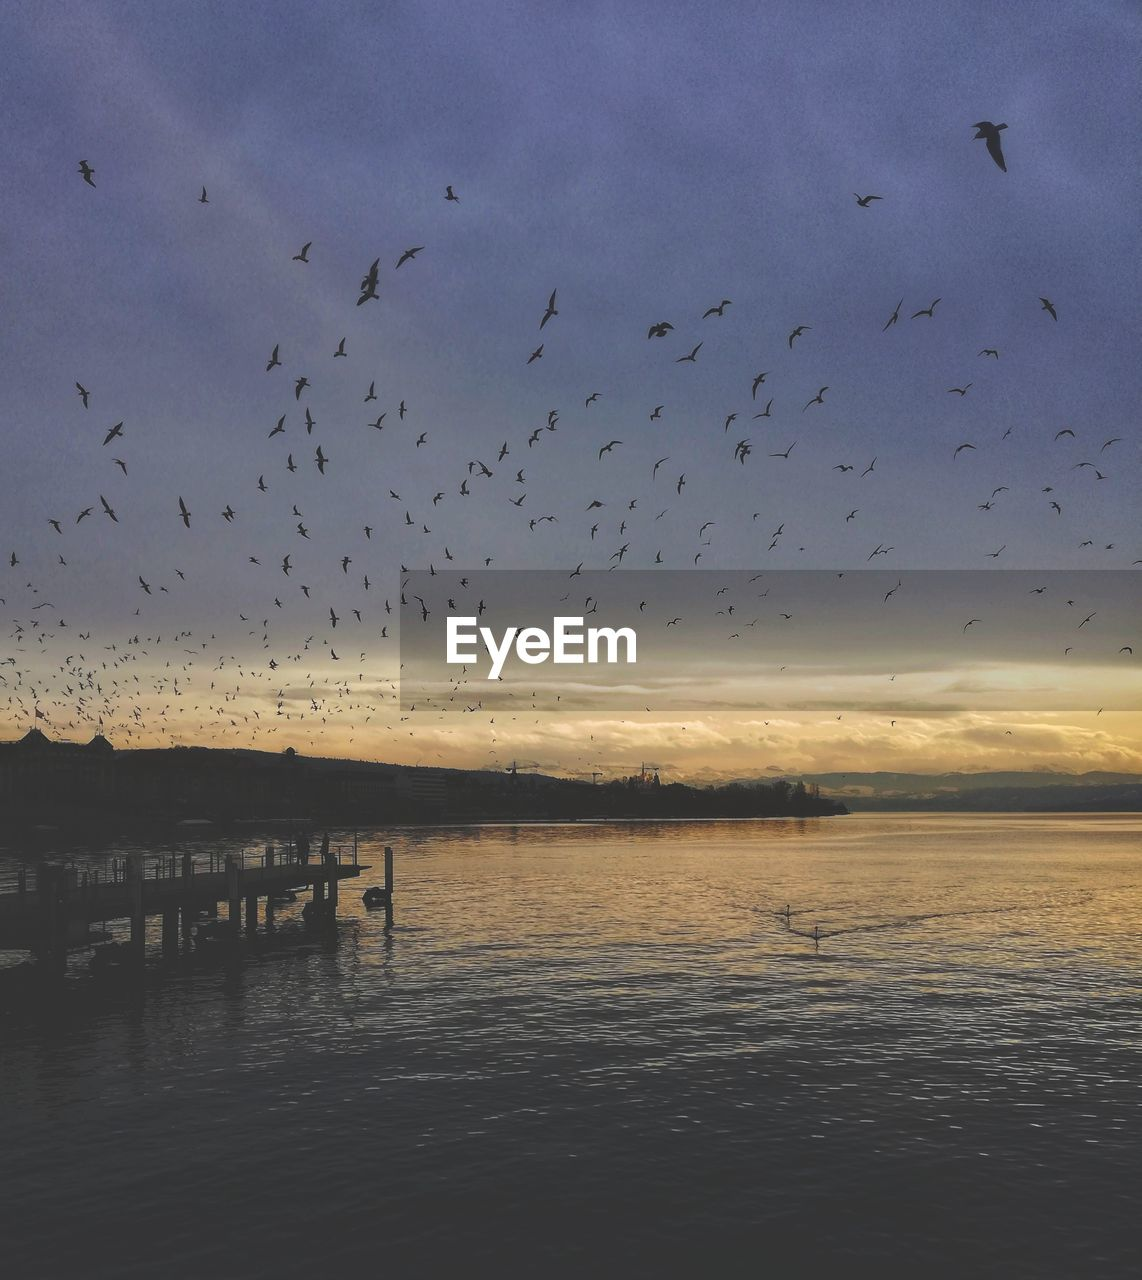 sky, bird, animal, animal themes, water, vertebrate, animals in the wild, large group of animals, group of animals, animal wildlife, beauty in nature, flying, sunset, waterfront, cloud - sky, scenics - nature, flock of birds, nature, tranquility, no people, outdoors, wooden post